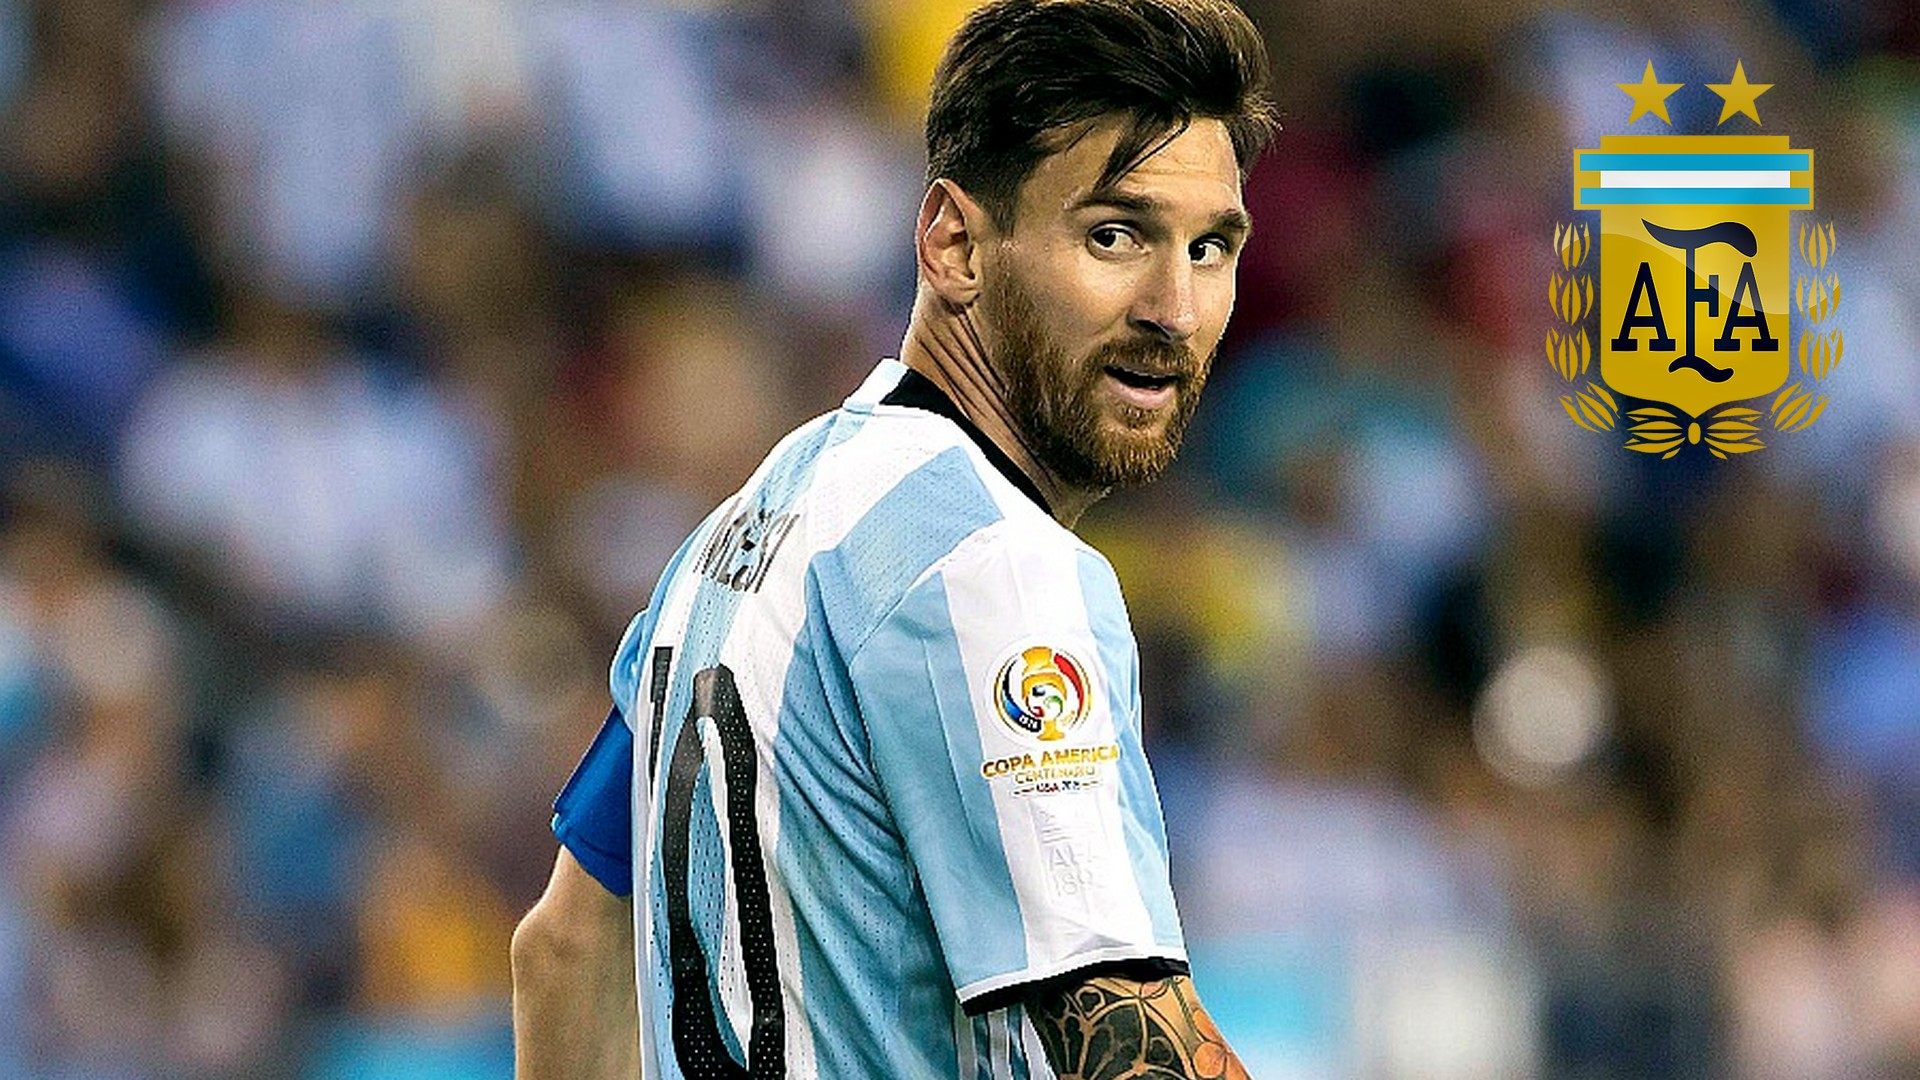 Cute Background Wallpapers For Whatsapp Messi Argentina Wallpaper For Desktop 2018 Cute Screensavers